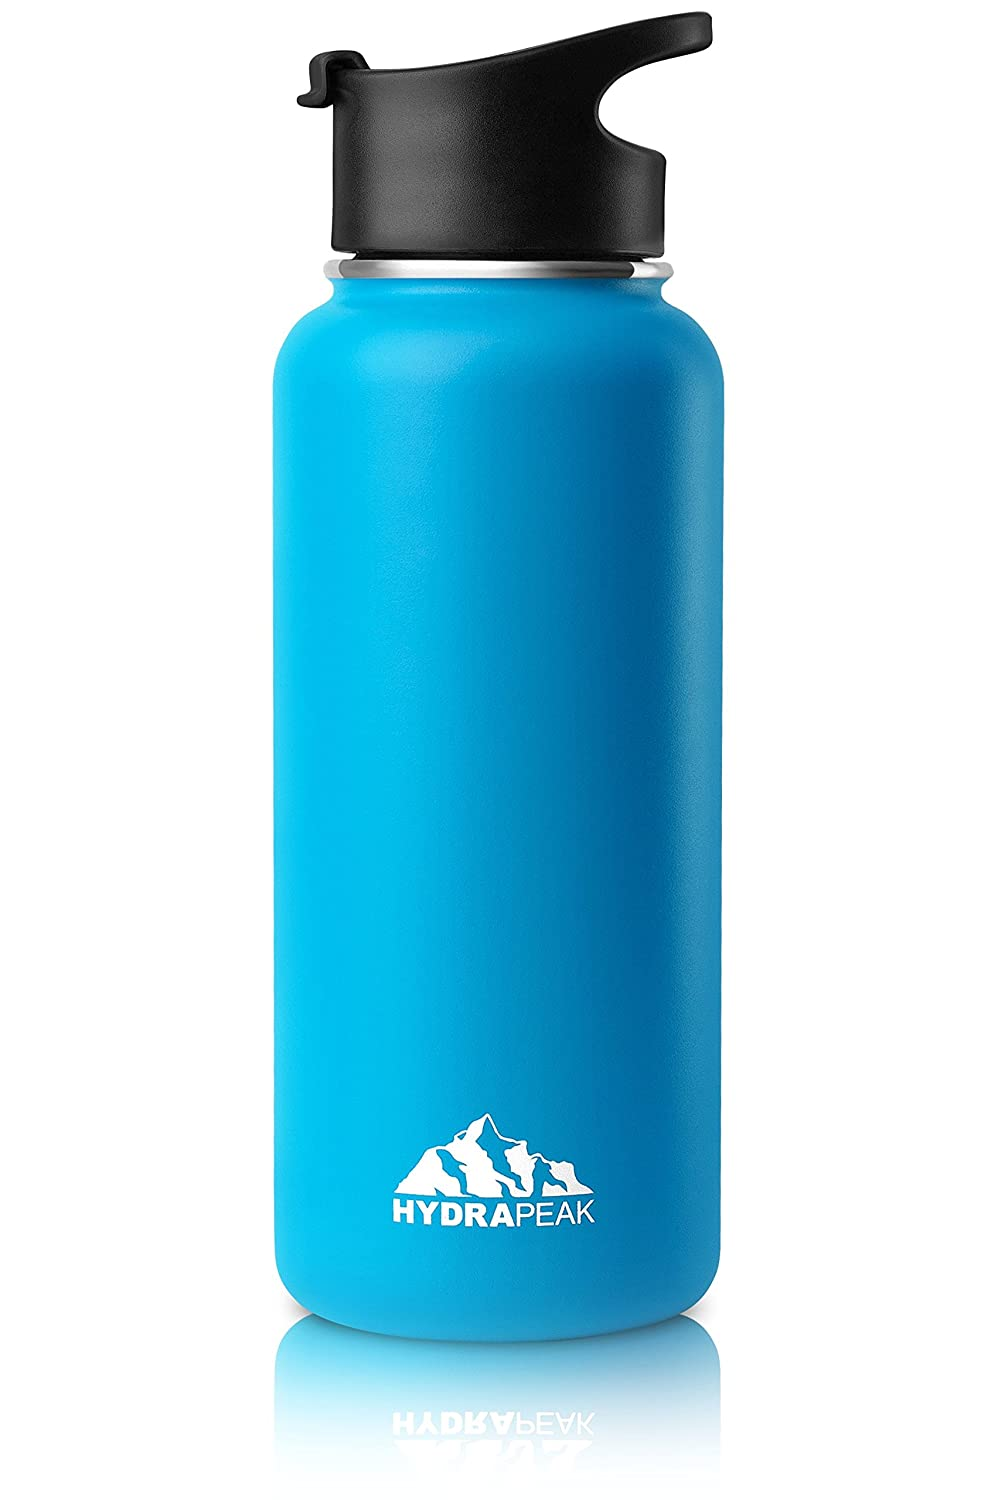 73ace5a680 Hydrapeak Wide Mouth Vacuum Insulated Stainless Steel Water Bottle.:  Amazon.co.uk: Sports & Outdoors